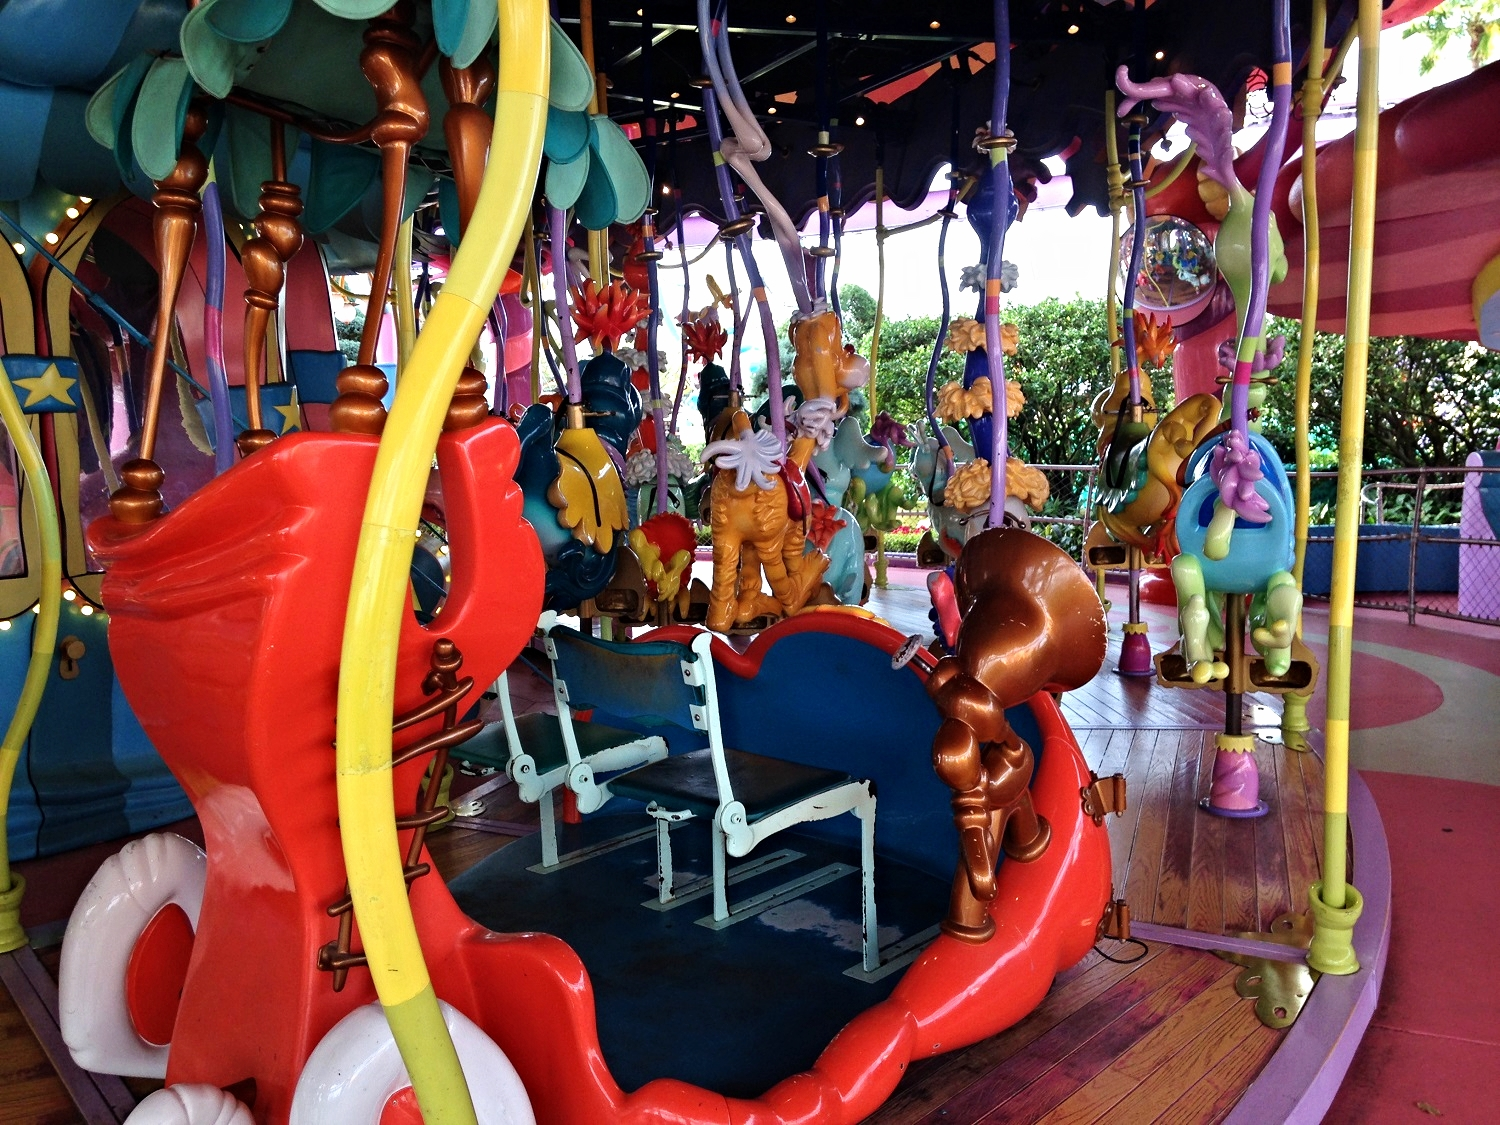 Some of the ride seats on the Caro-Seuss-El are more accessible than others.